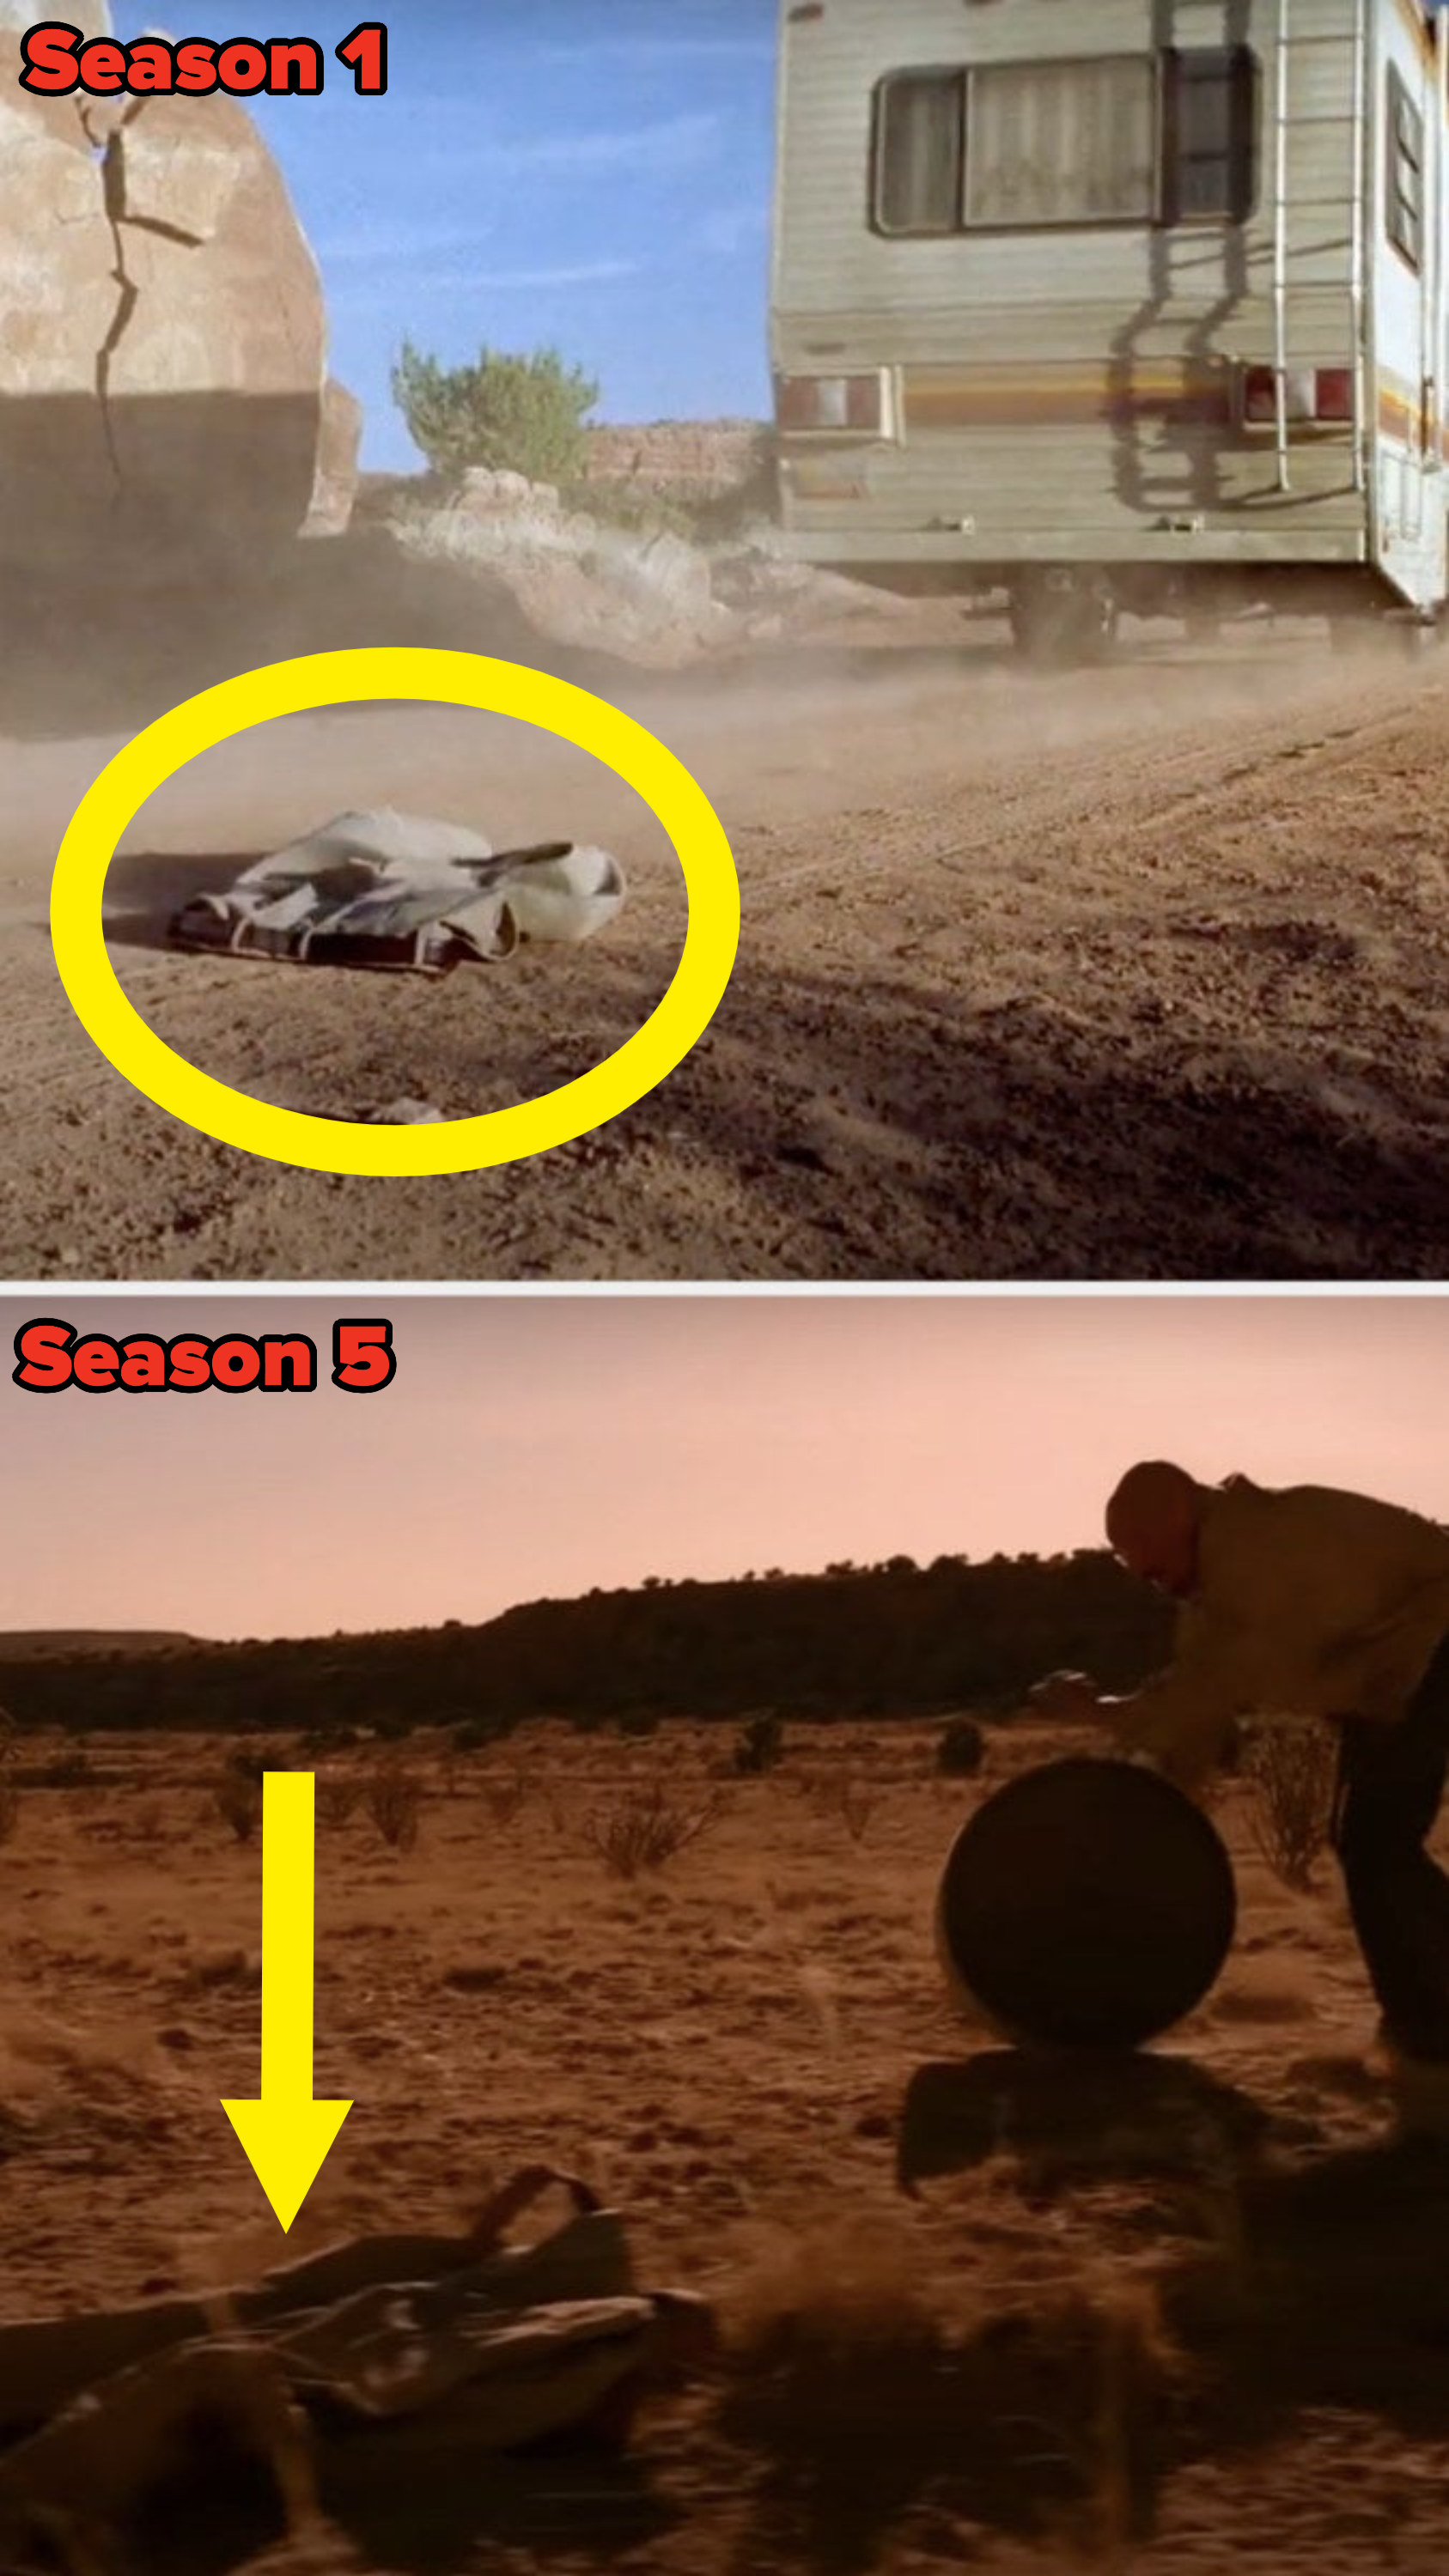 The pants lying in the desert in both episodes